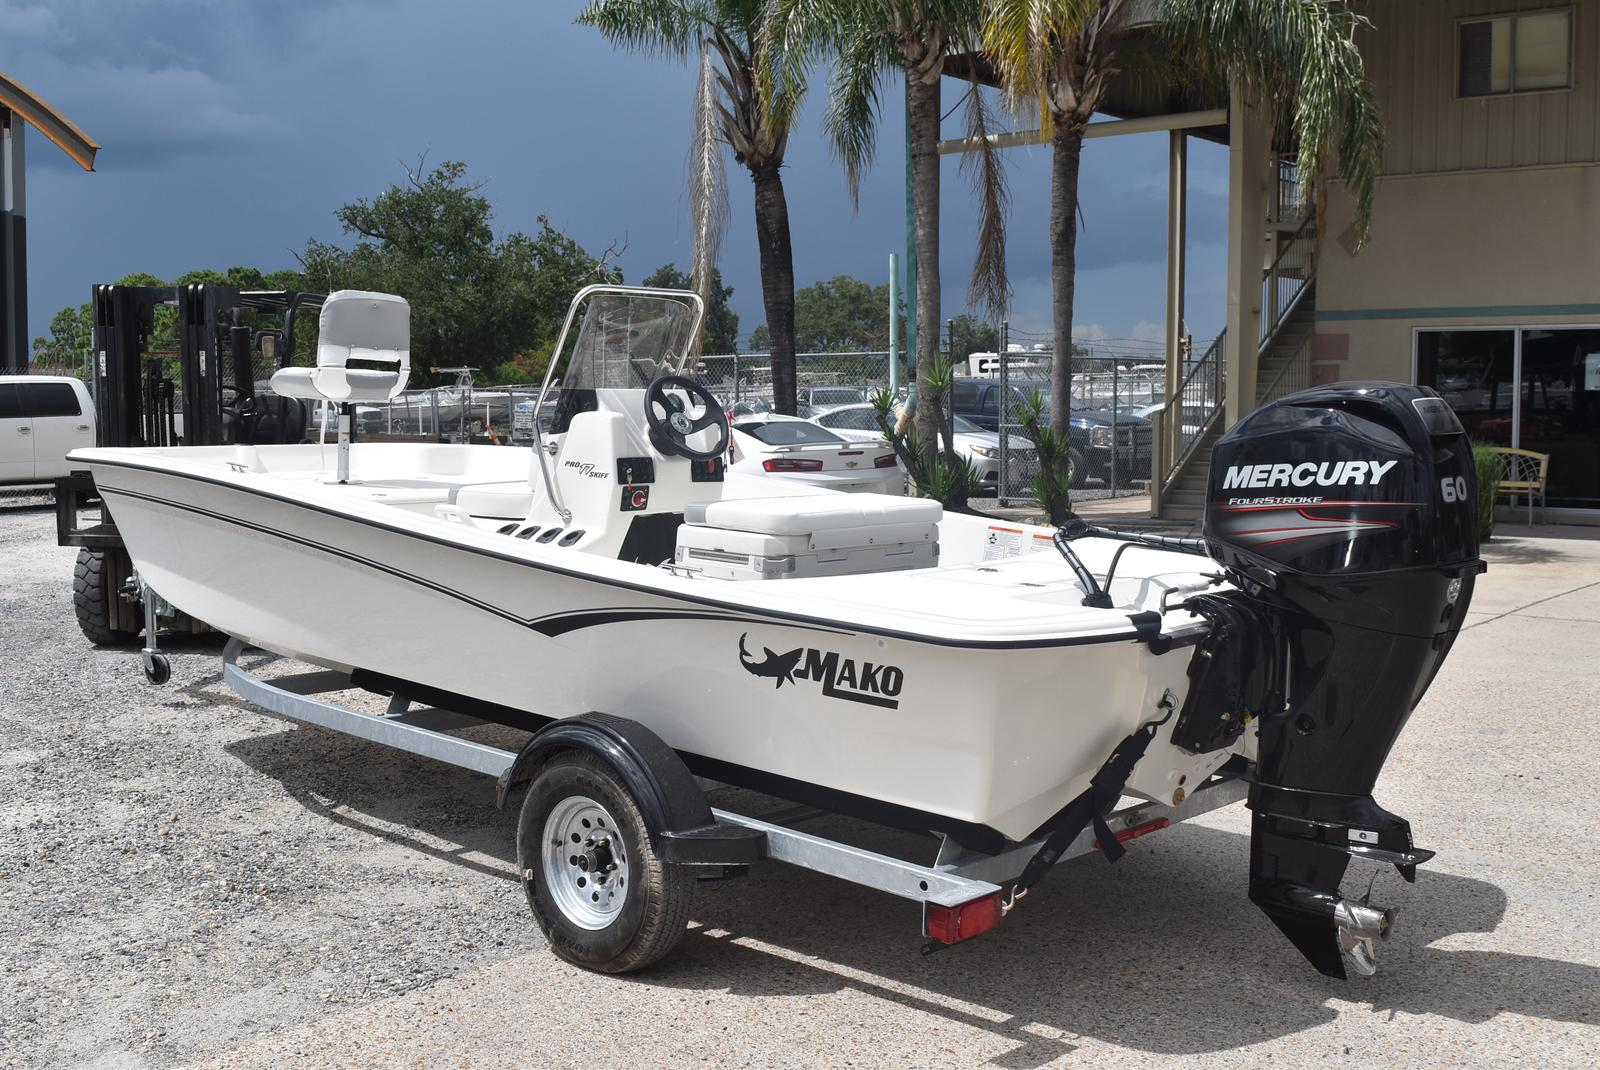 2020 Mako boat for sale, model of the boat is Pro Skiff 17, 75 ELPT & Image # 227 of 702